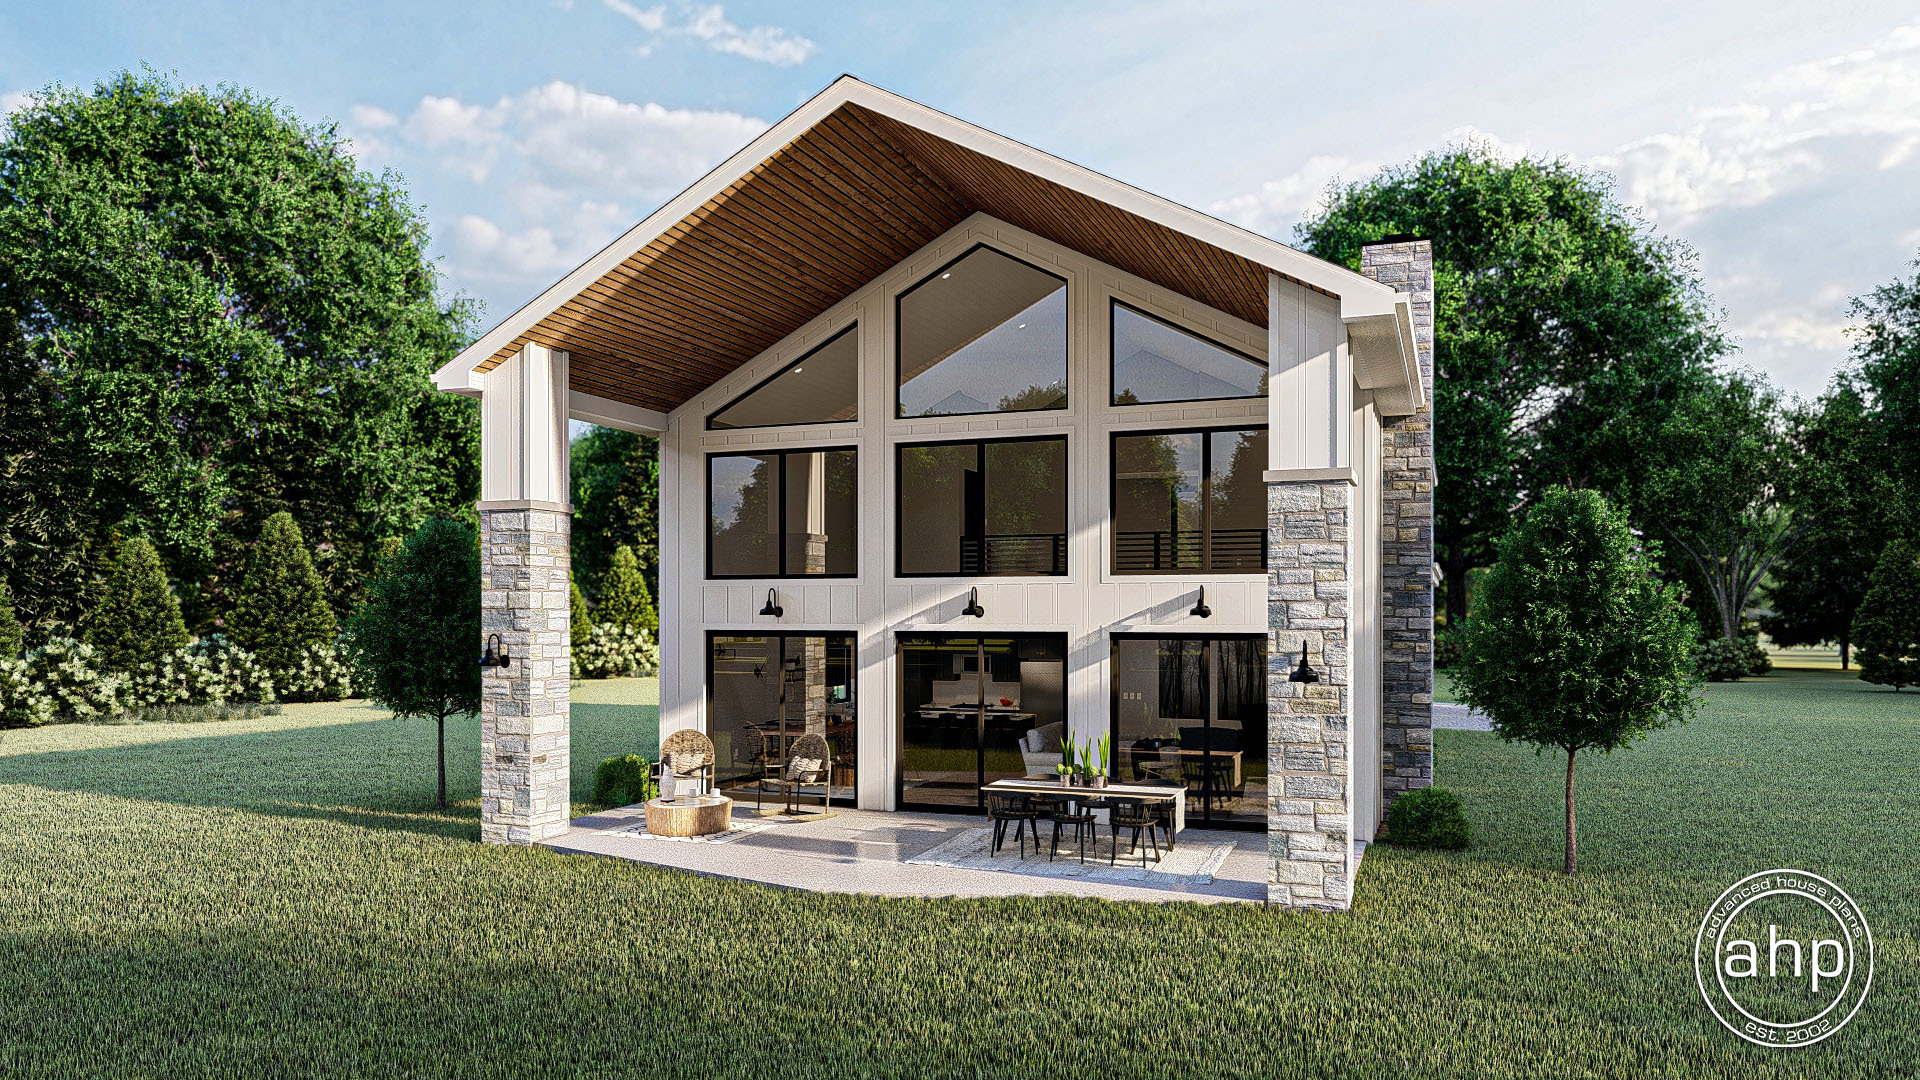 House Plans By Advanced House Plans Find Your Dream Home Today